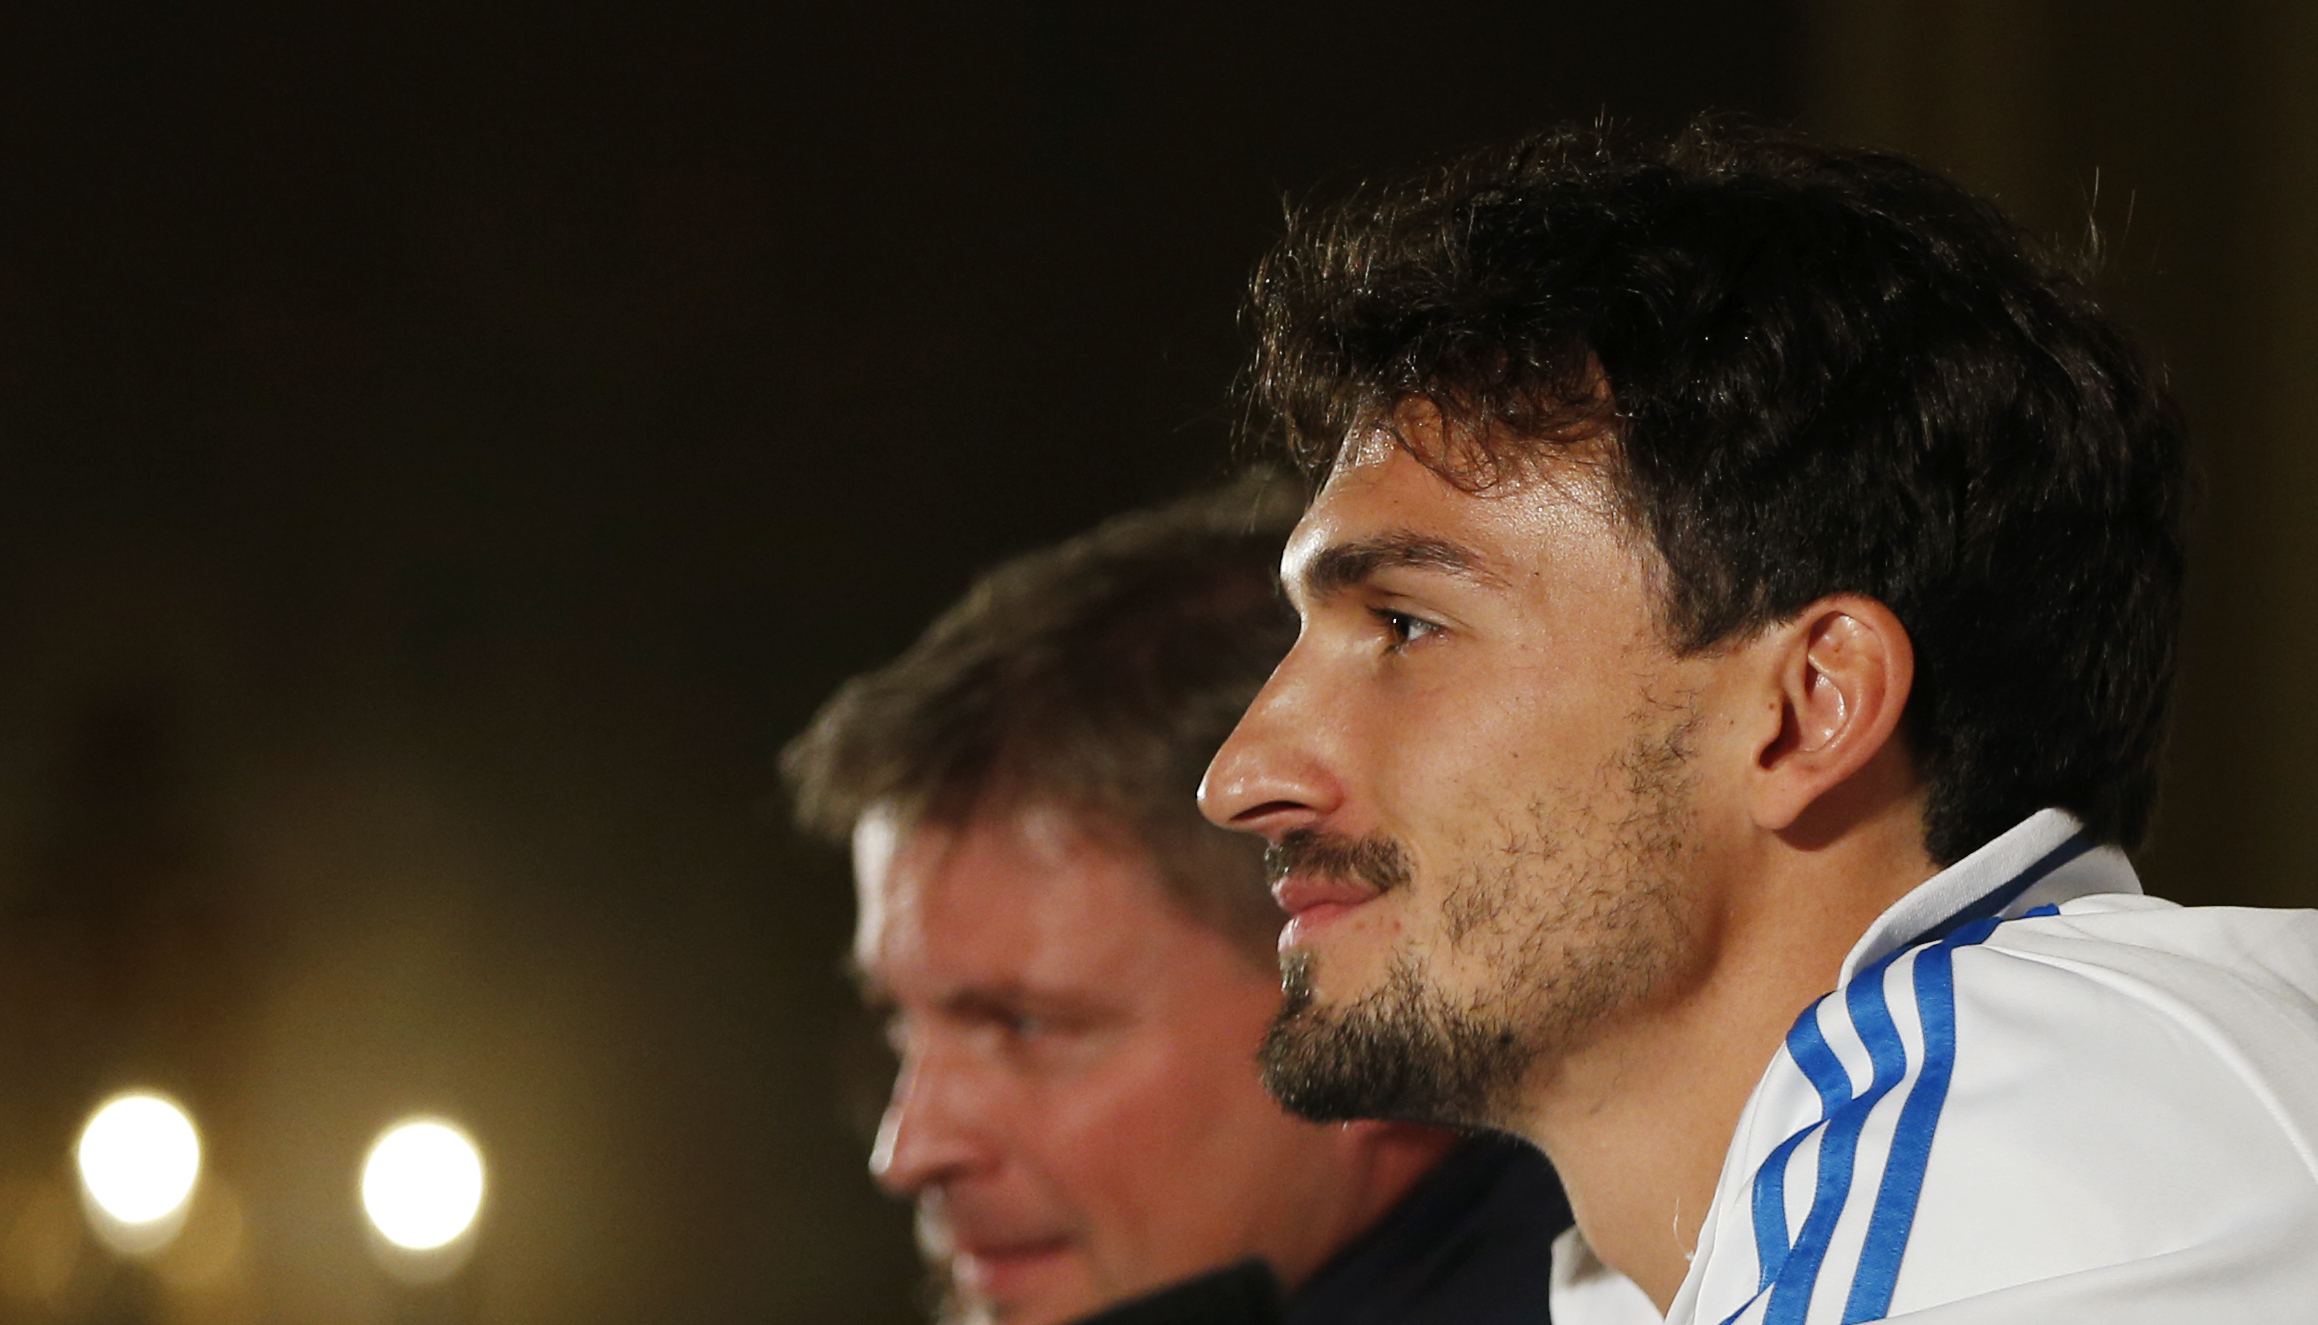 Football - Germany Press Conference - Intercontinental Hotel, Dublin, Republic of Ireland - 7/10/15nGermany's Mats Hummels during the press conferencenAction Images via Reuters / Andrew CouldridgenLivepicnEDITORIAL USE ONLY.